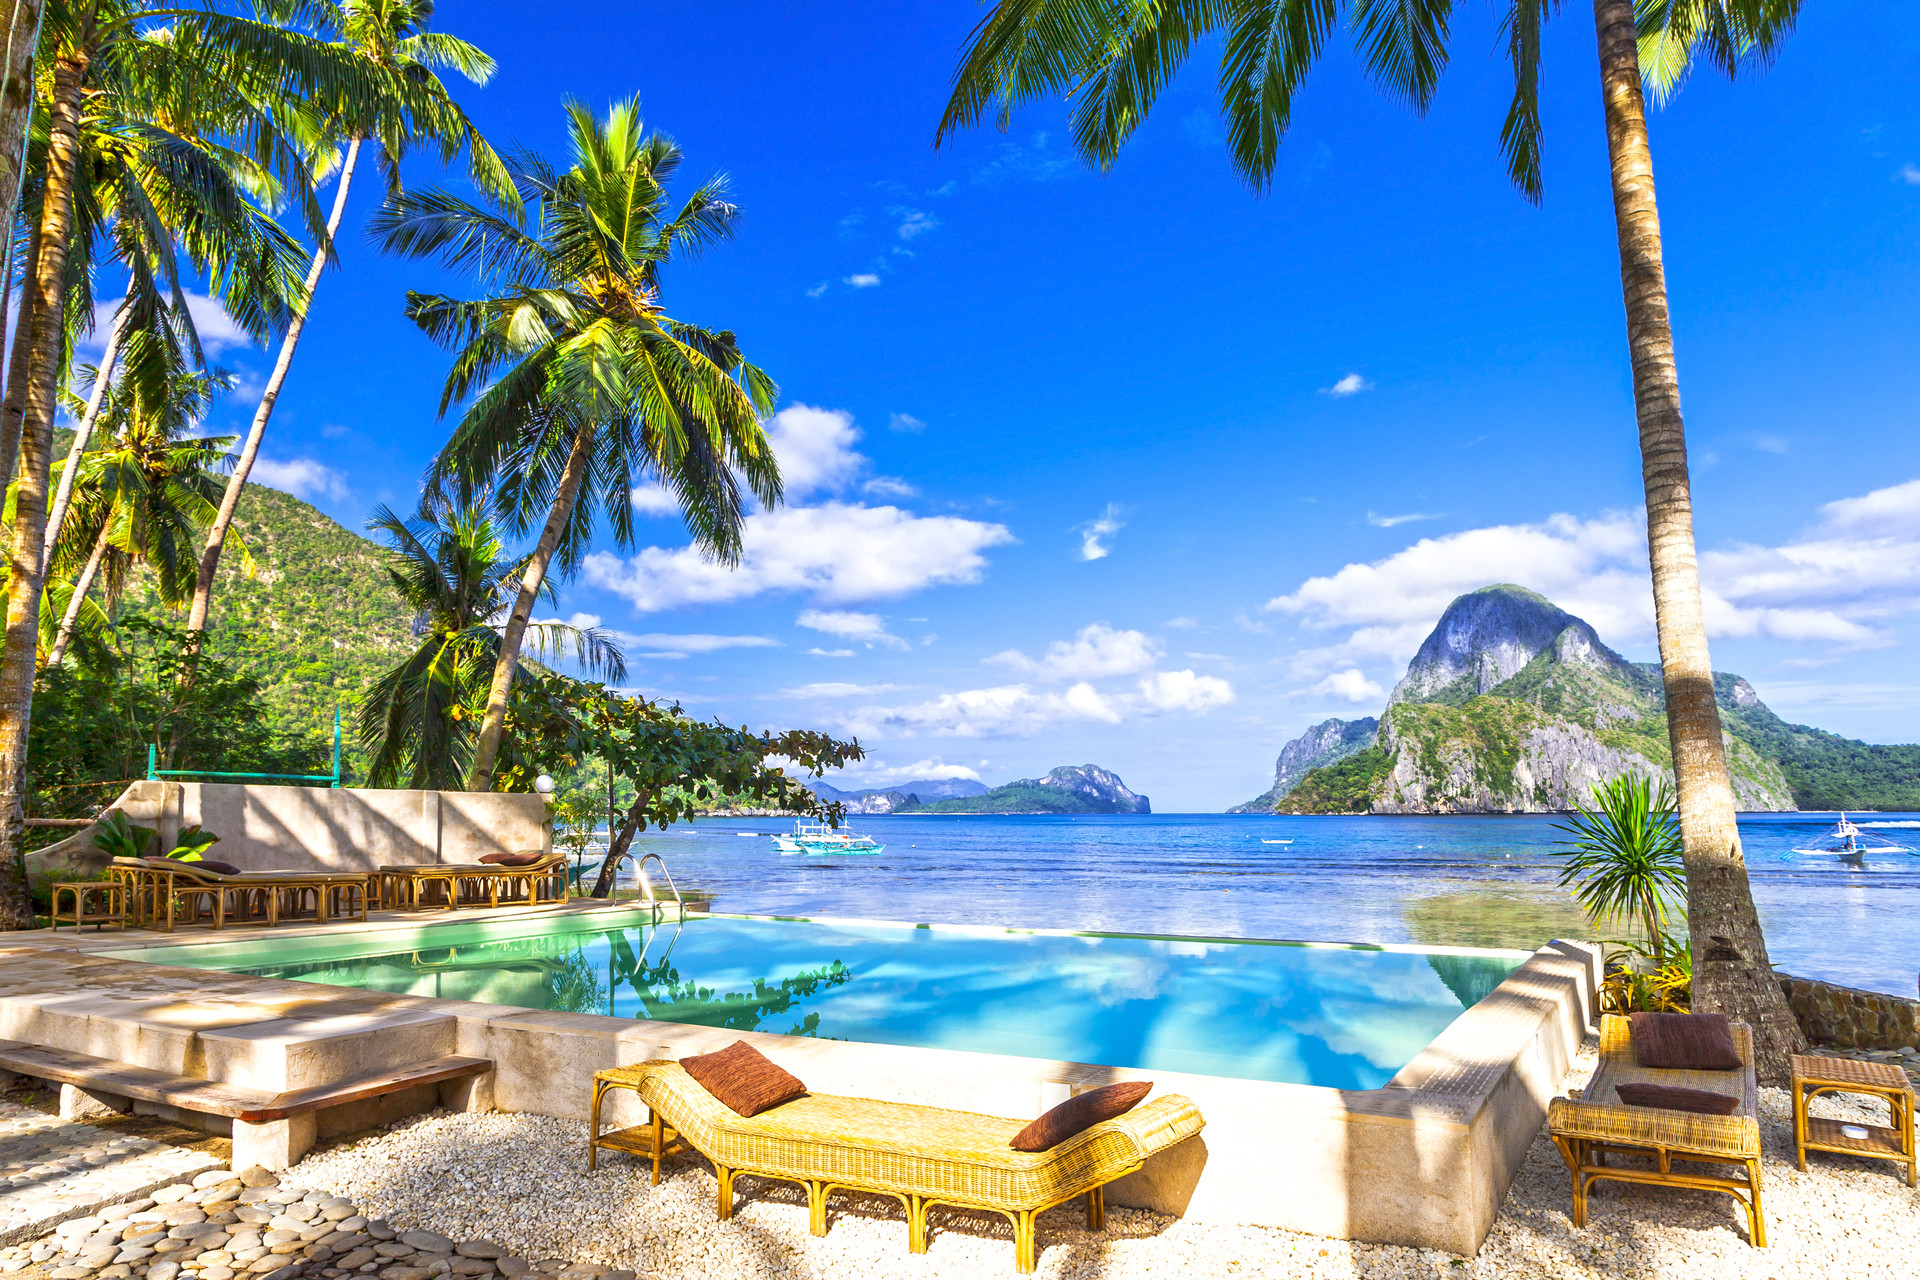 Top Tips for your Next Trip to El Nido.